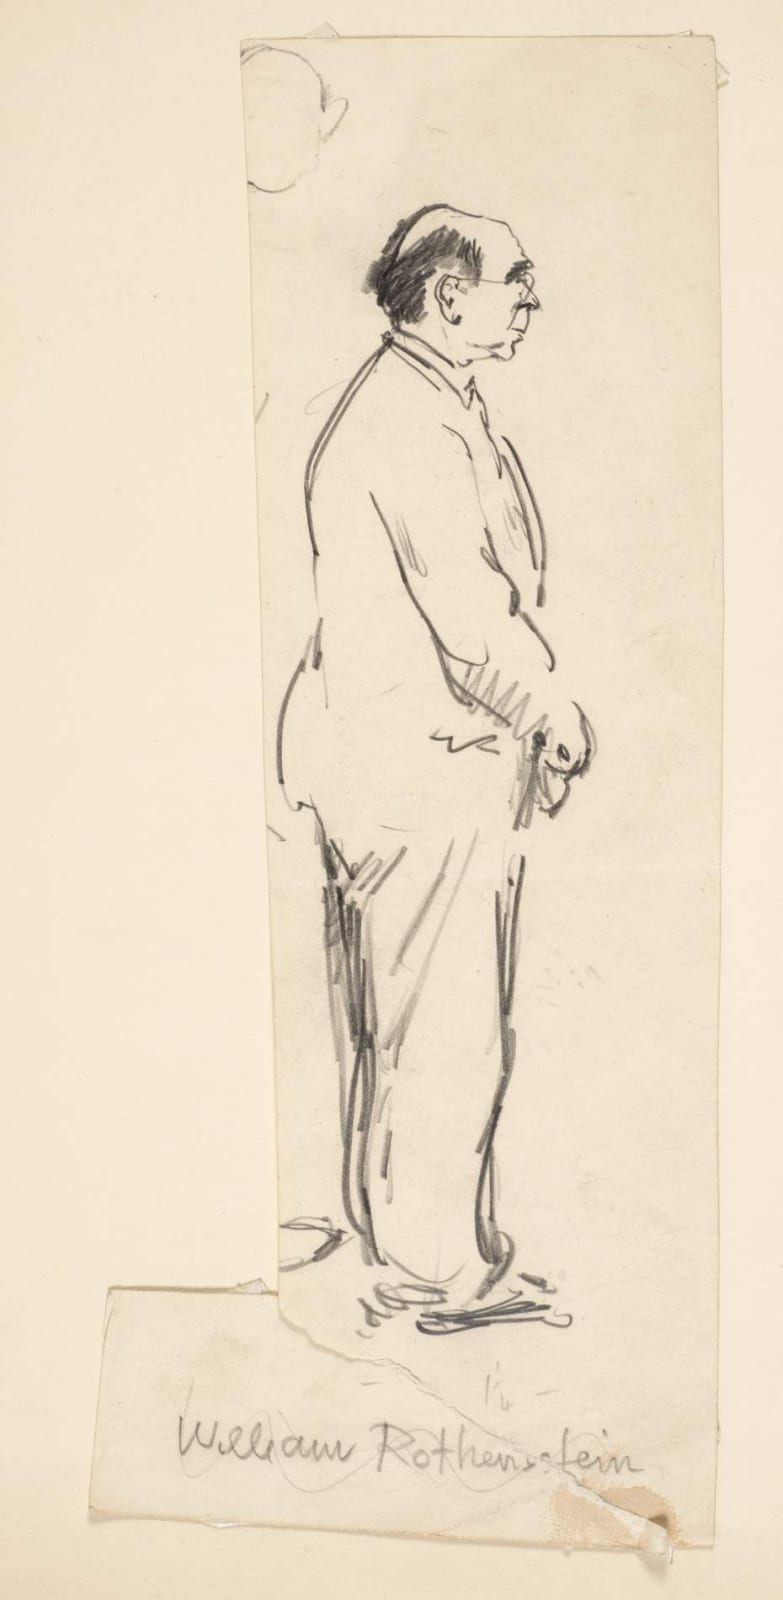 Milein Cosman (1921-2017) William Rothenstein 1941 Pencil on paper 24.2 x 7.7 cm Private Collection © Milein Cosman estate To see and discover more about this artist click here